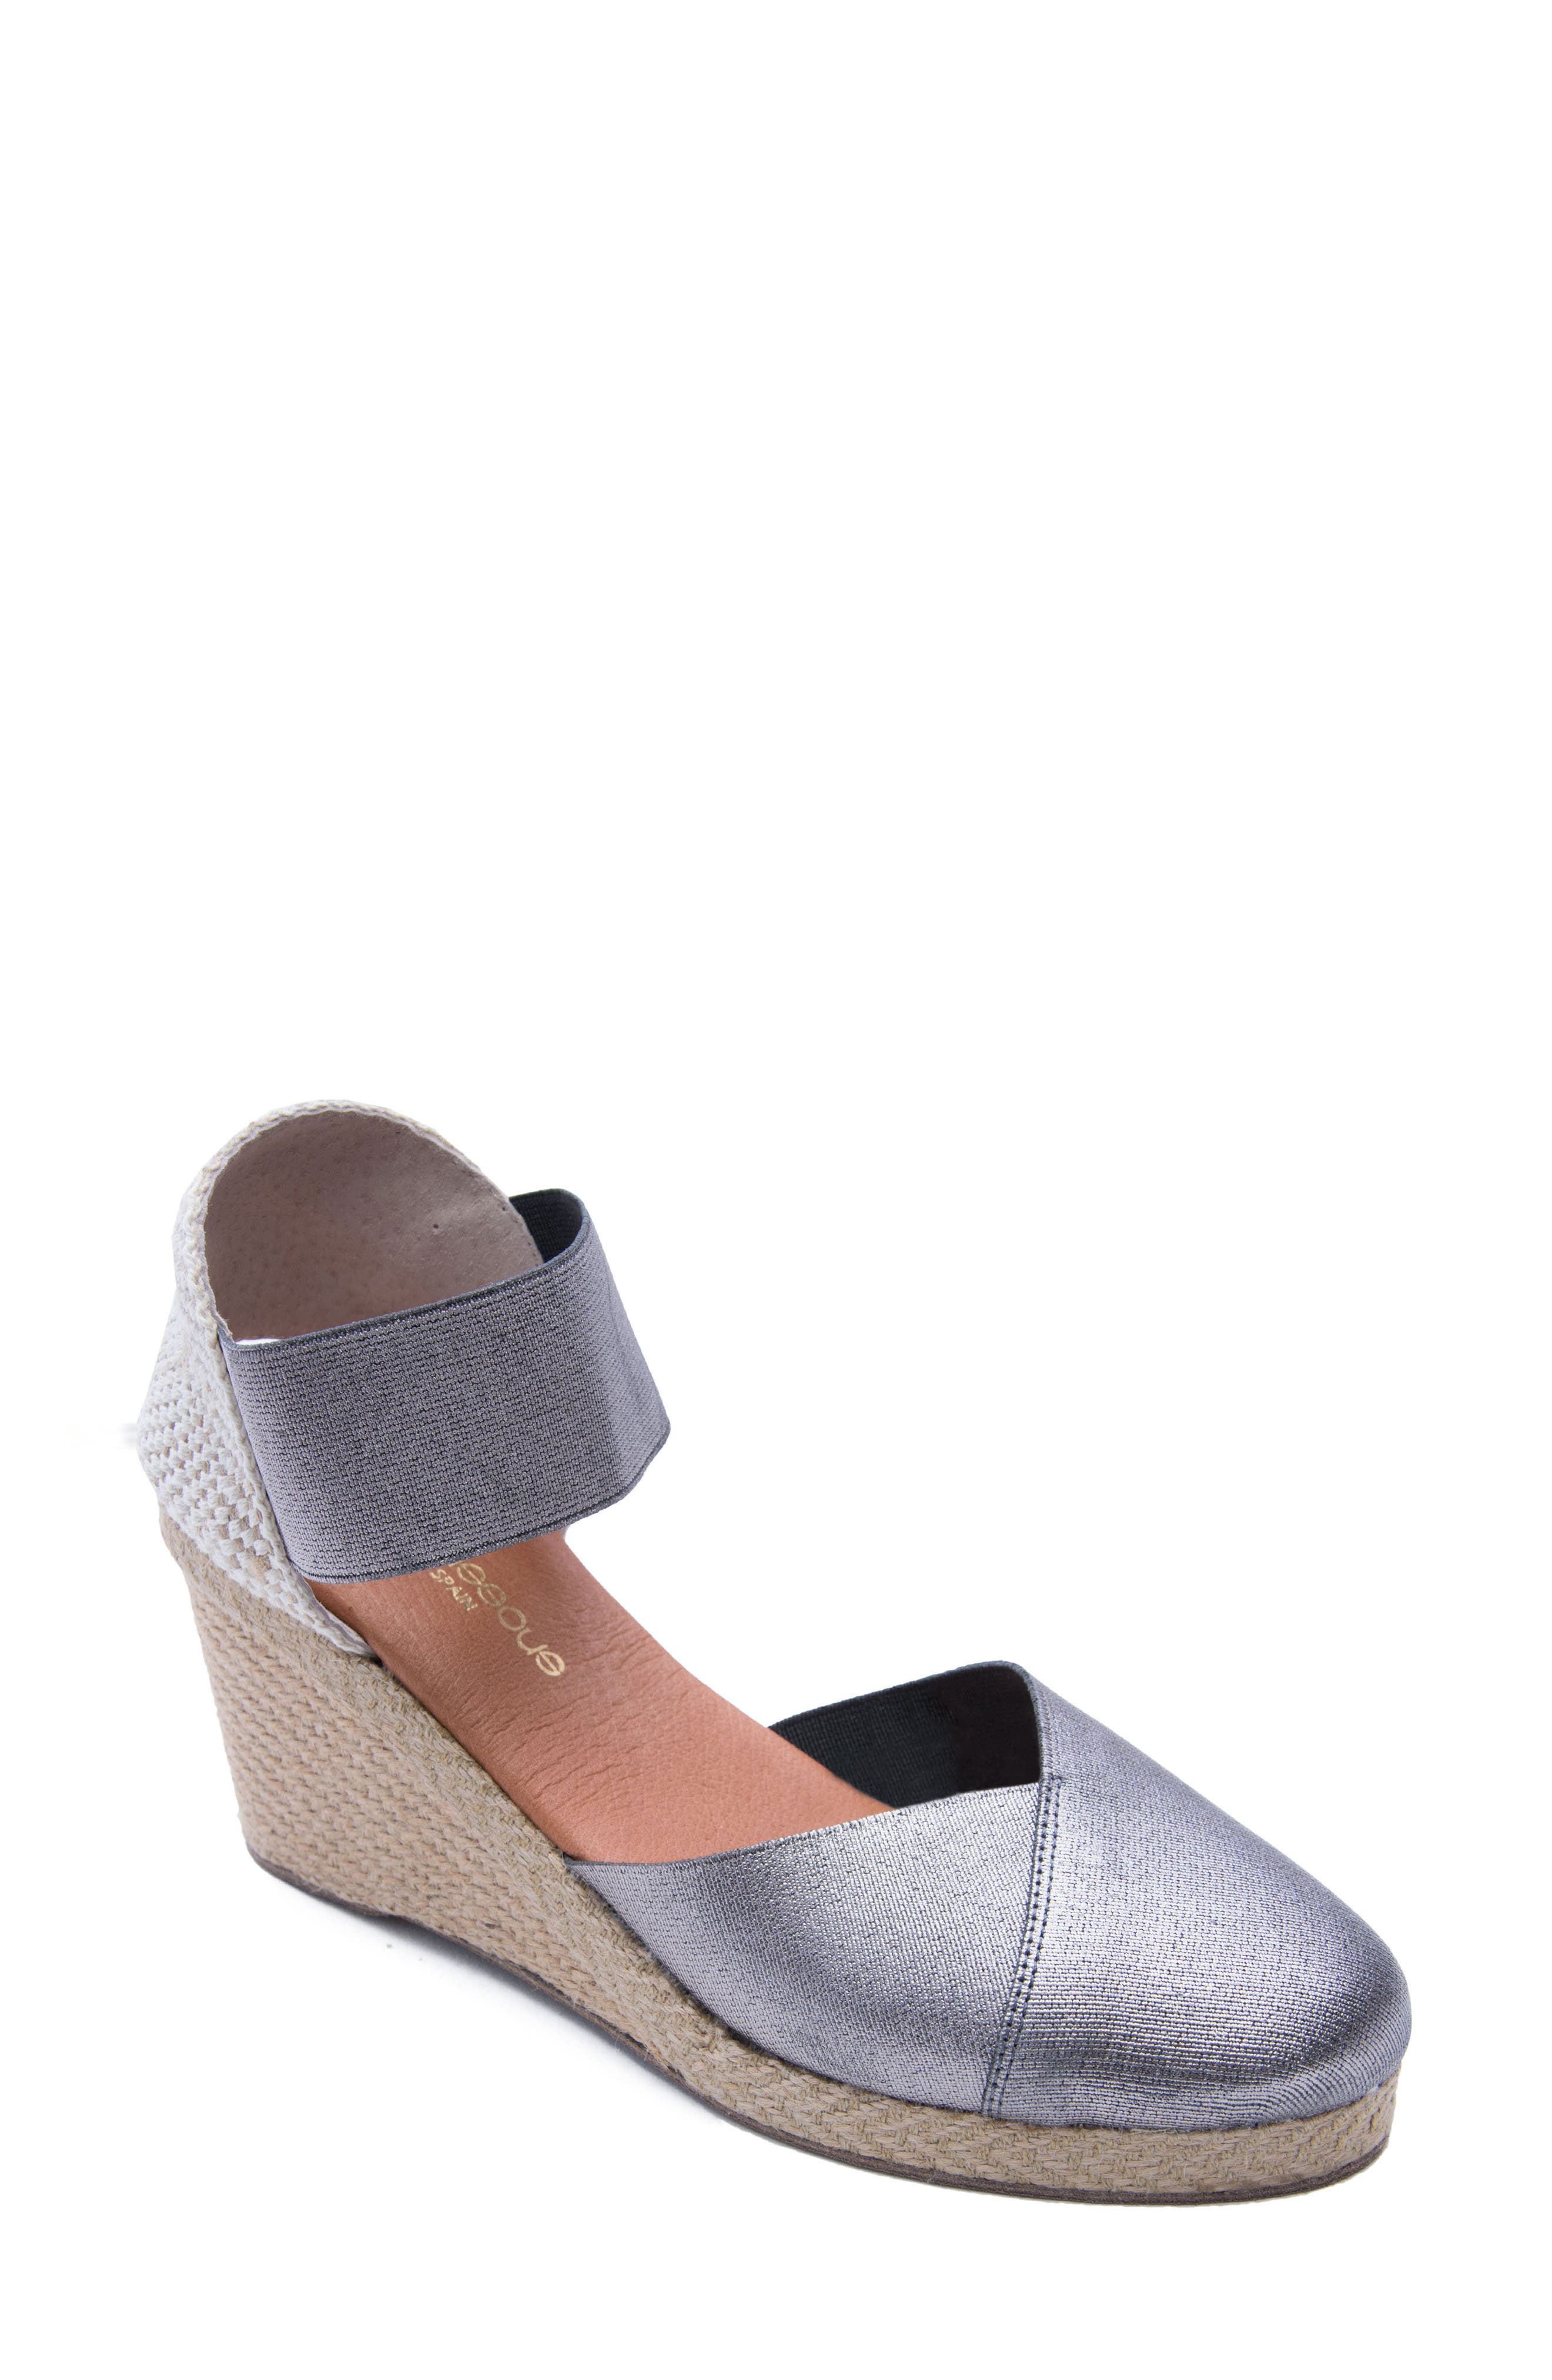 ANDRE ASSOUS Anouka Espadrille Wedge in Pewter Fabric